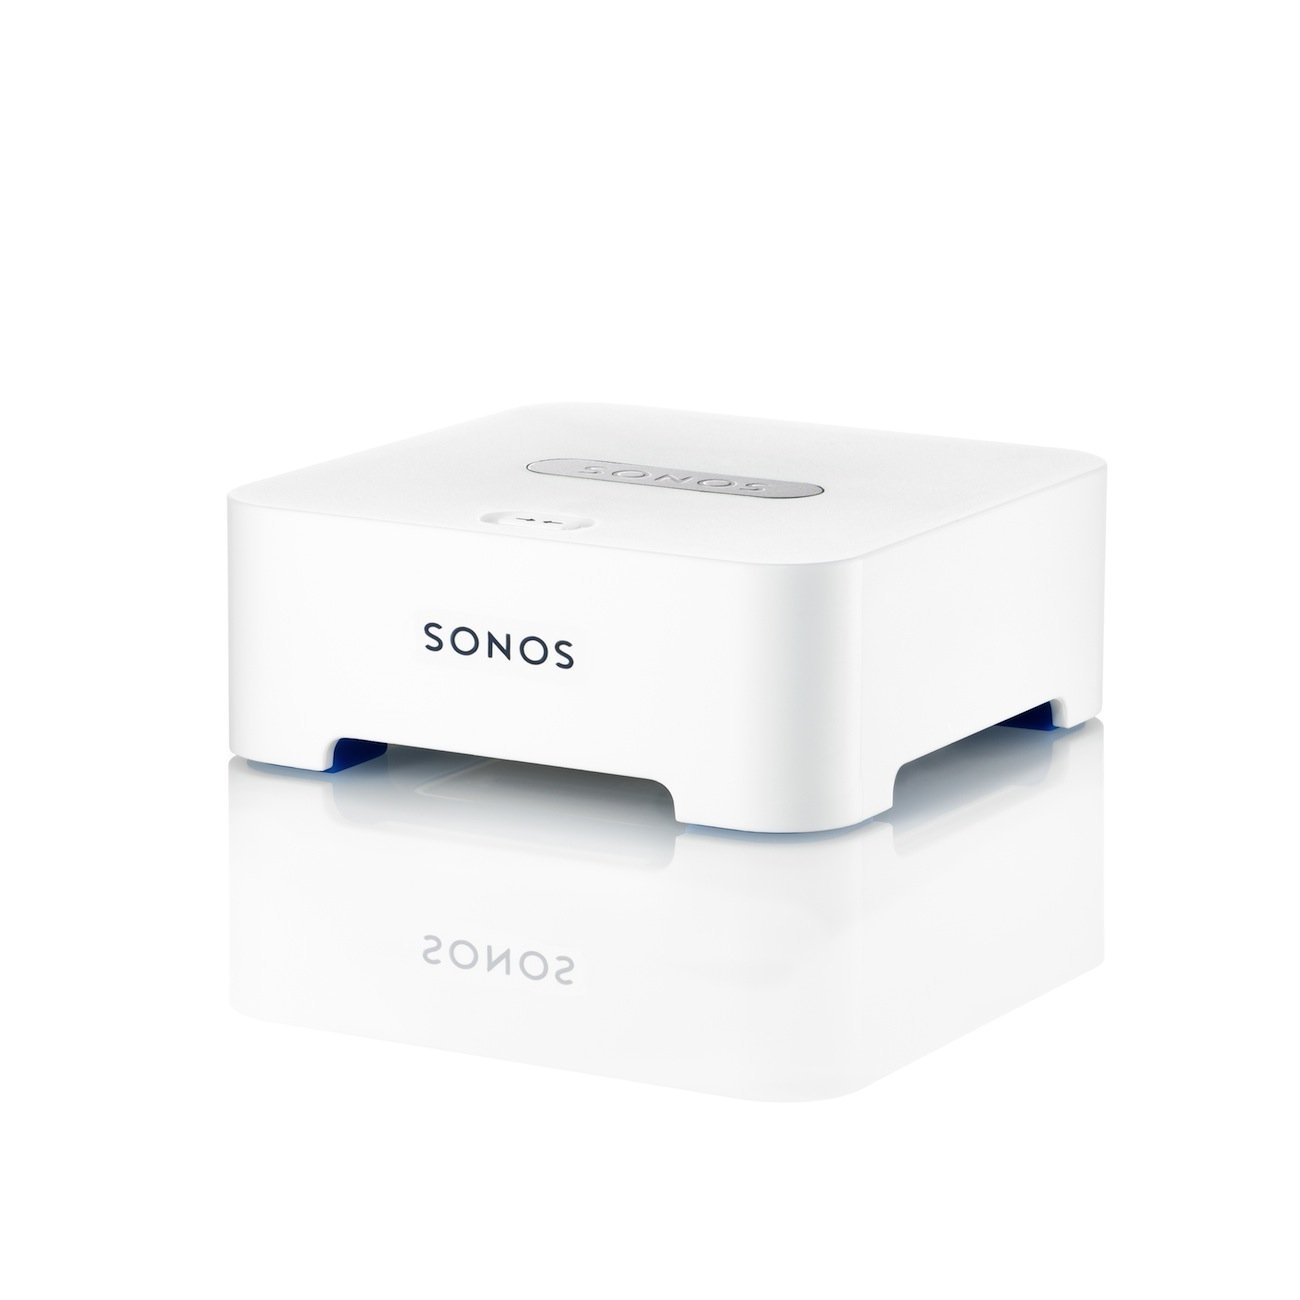 SONOS Bridge Instant Setup for Wireless Network ZoneBridge BR100